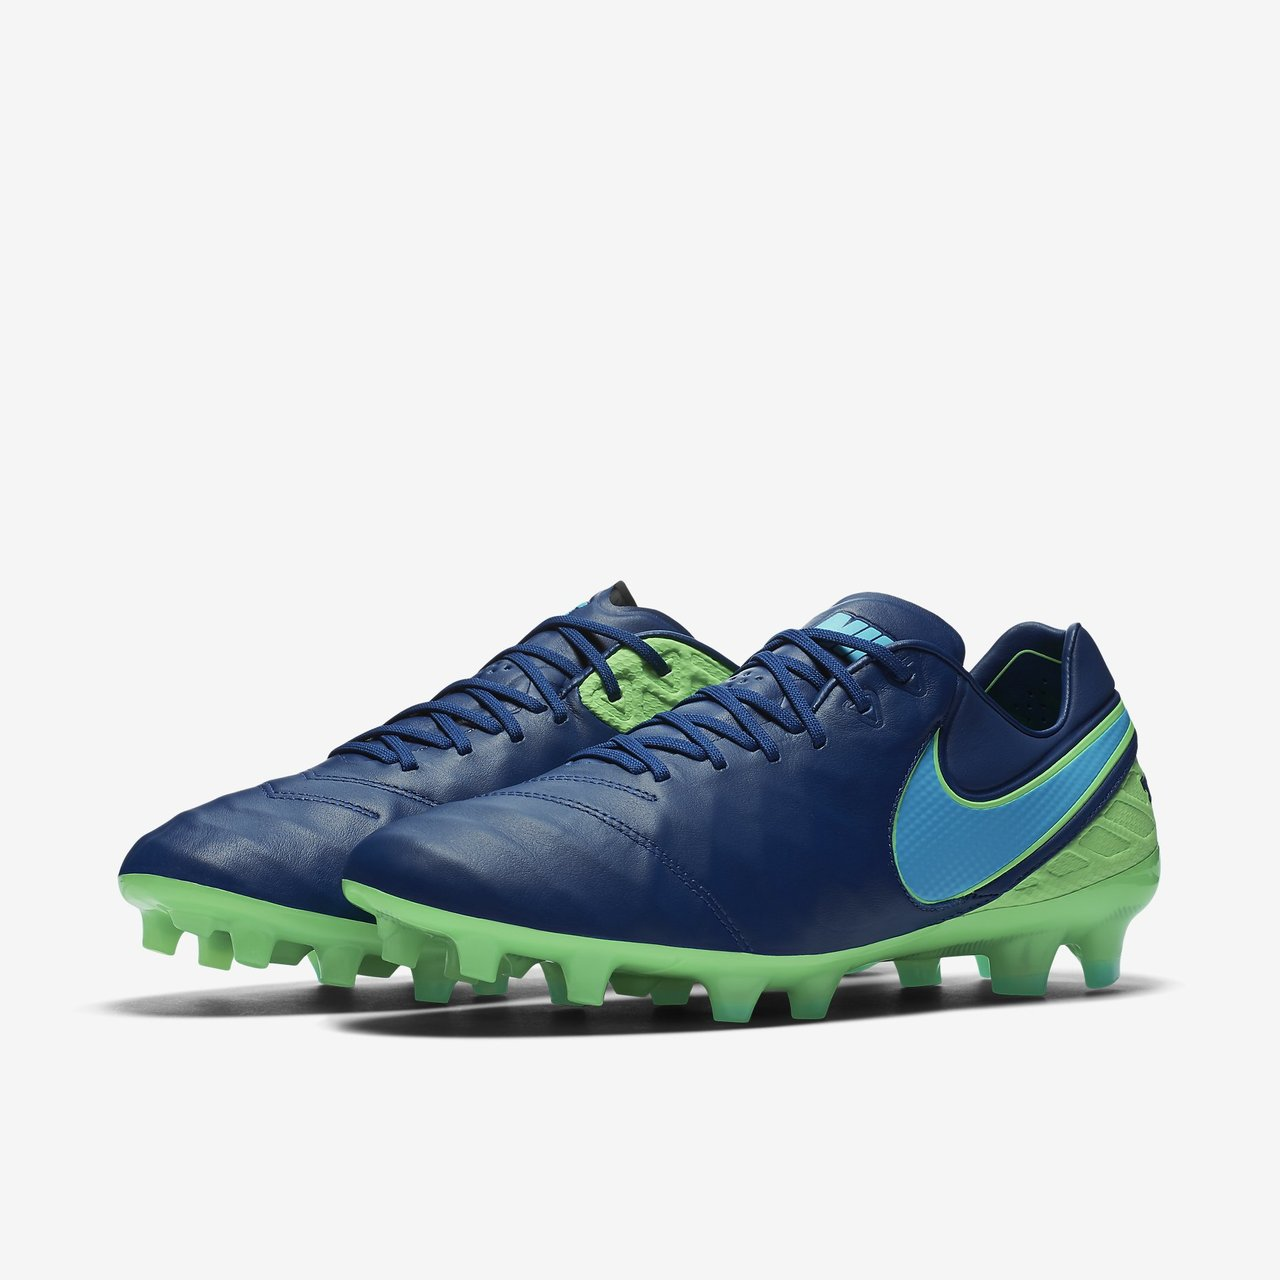 promo code 014f5 0e775 Nike Tiempo Legend VI FG - Floodlights Pack - Coastal Blue ...